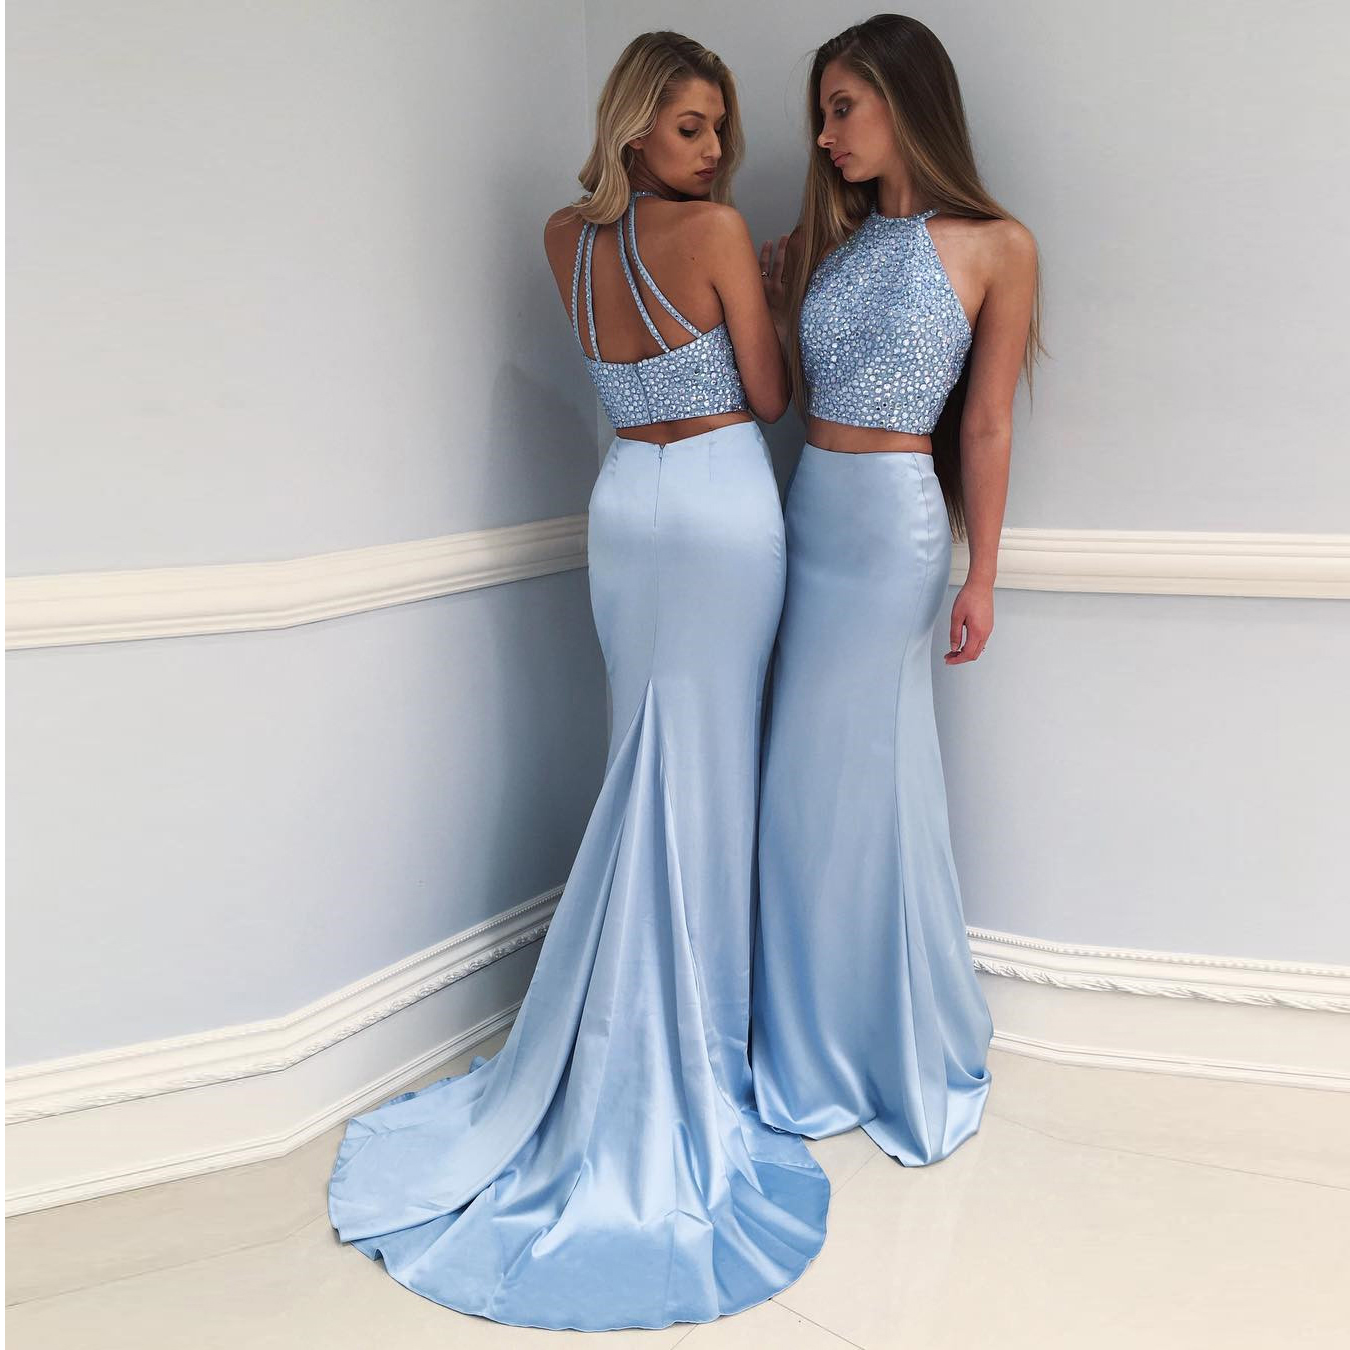 90fd68c5fc897 Two 20piece 20prom 20dress 20light 20blue 2c 20beaded 20halter 20mermaid  20formal 20evening 20gown original